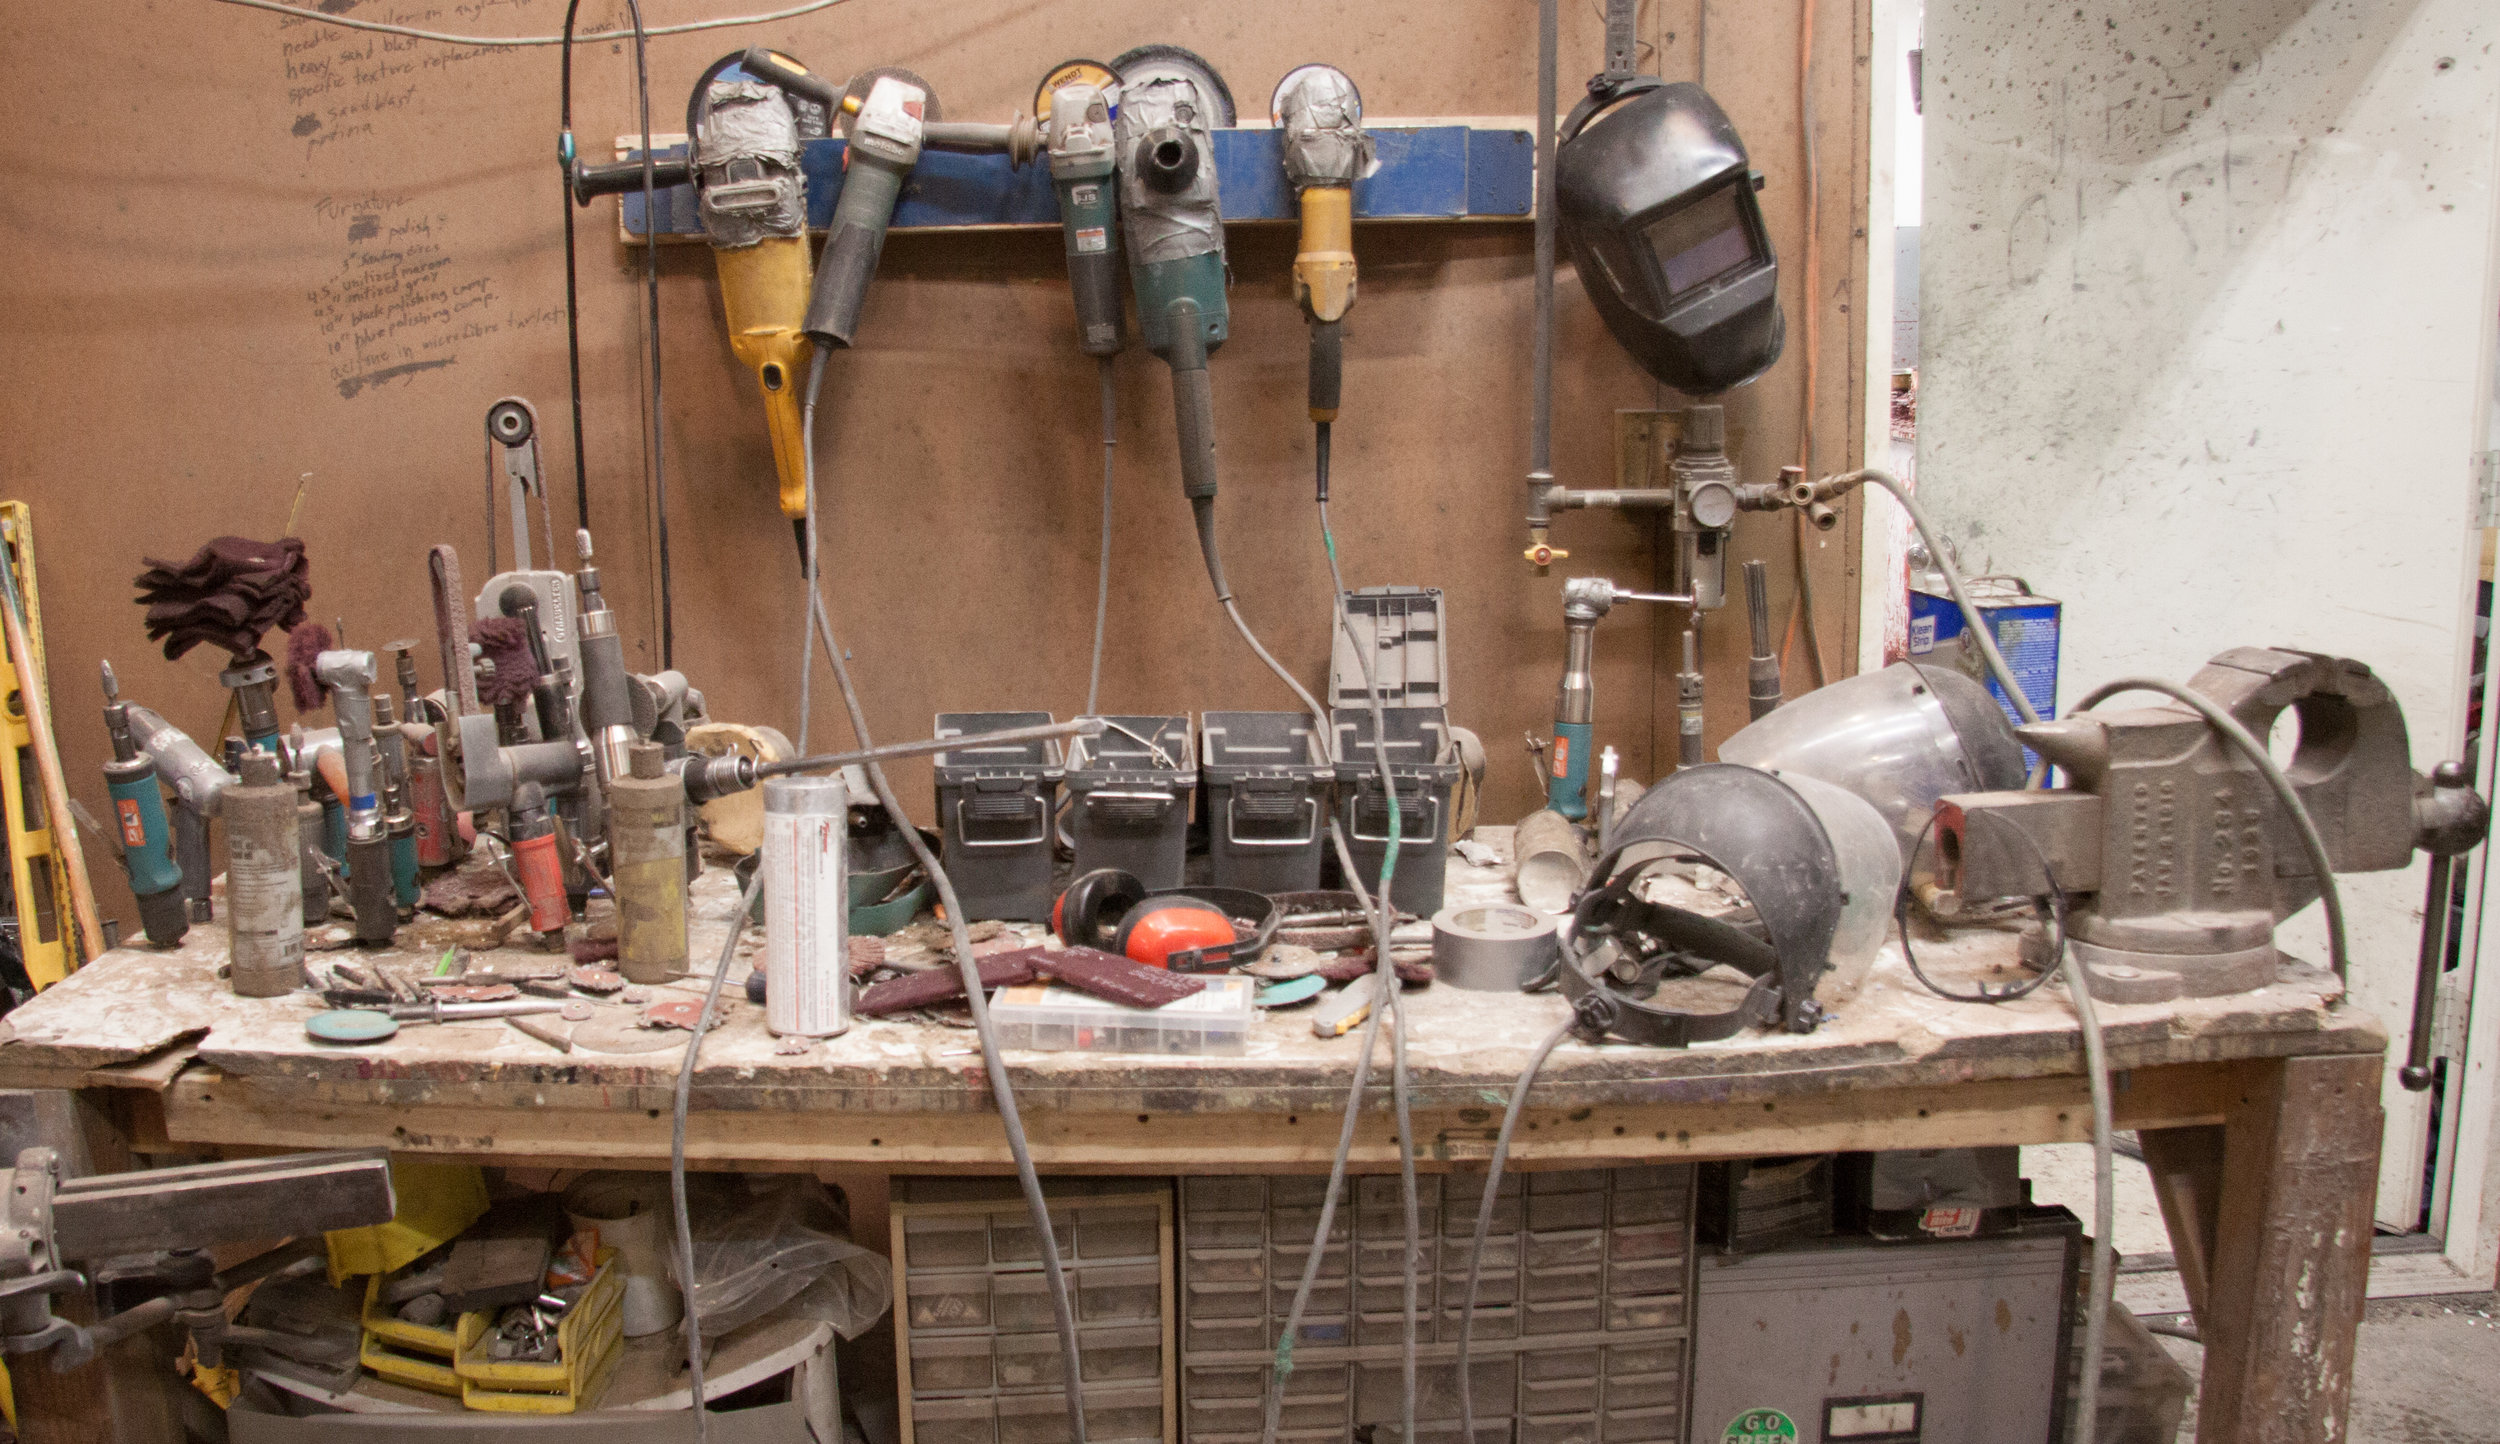 The metal working bench at Mission Foundry.